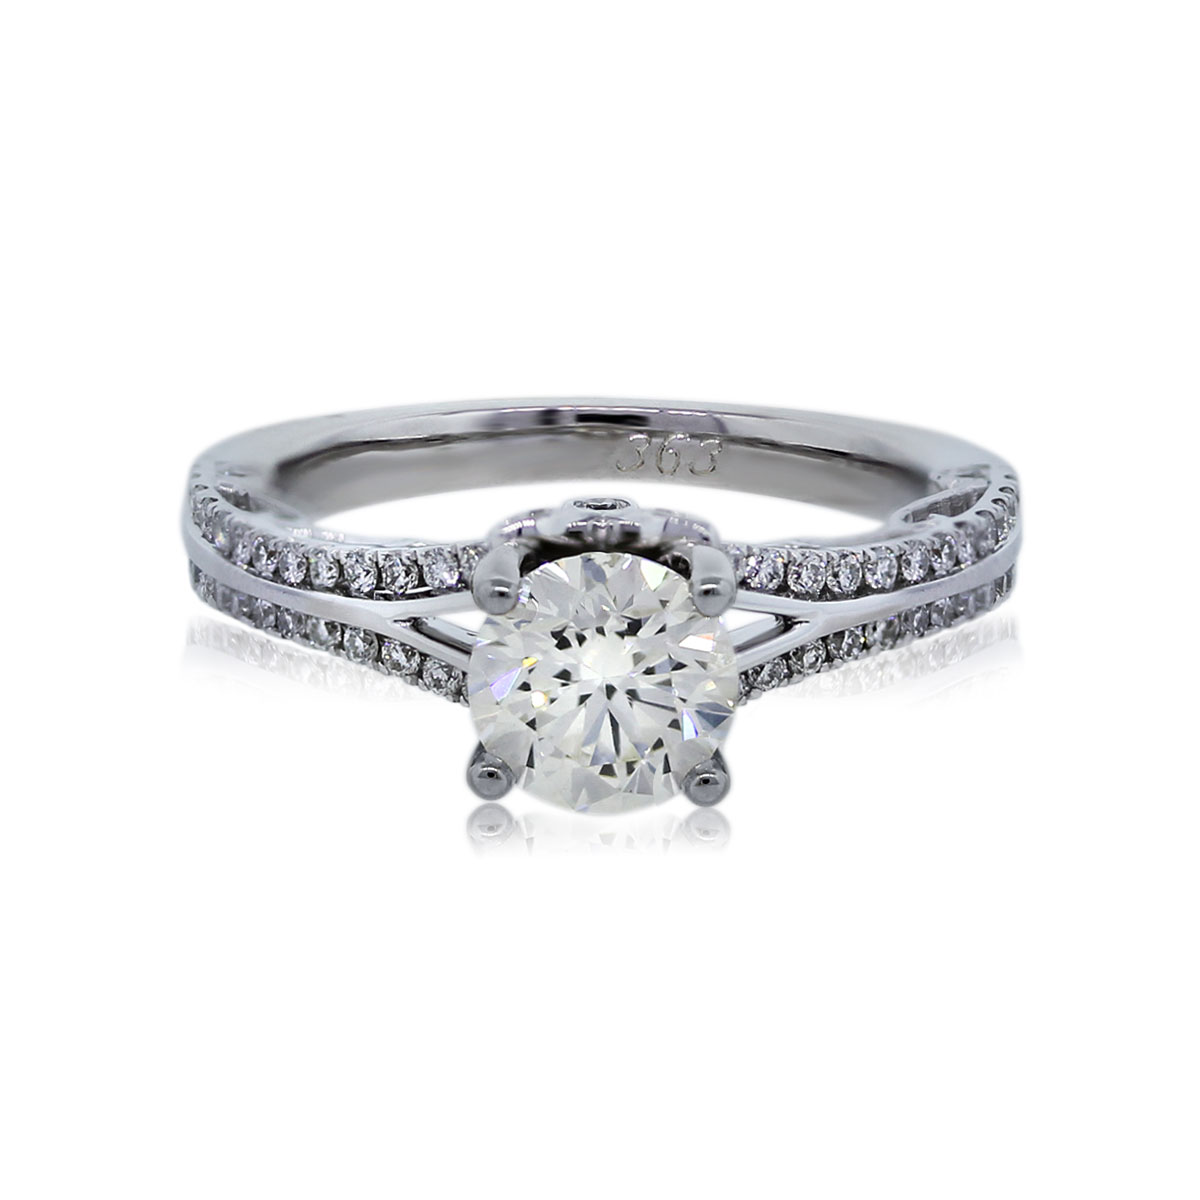 You are Viewing this 1.02ct Diamond Engagement Ring!